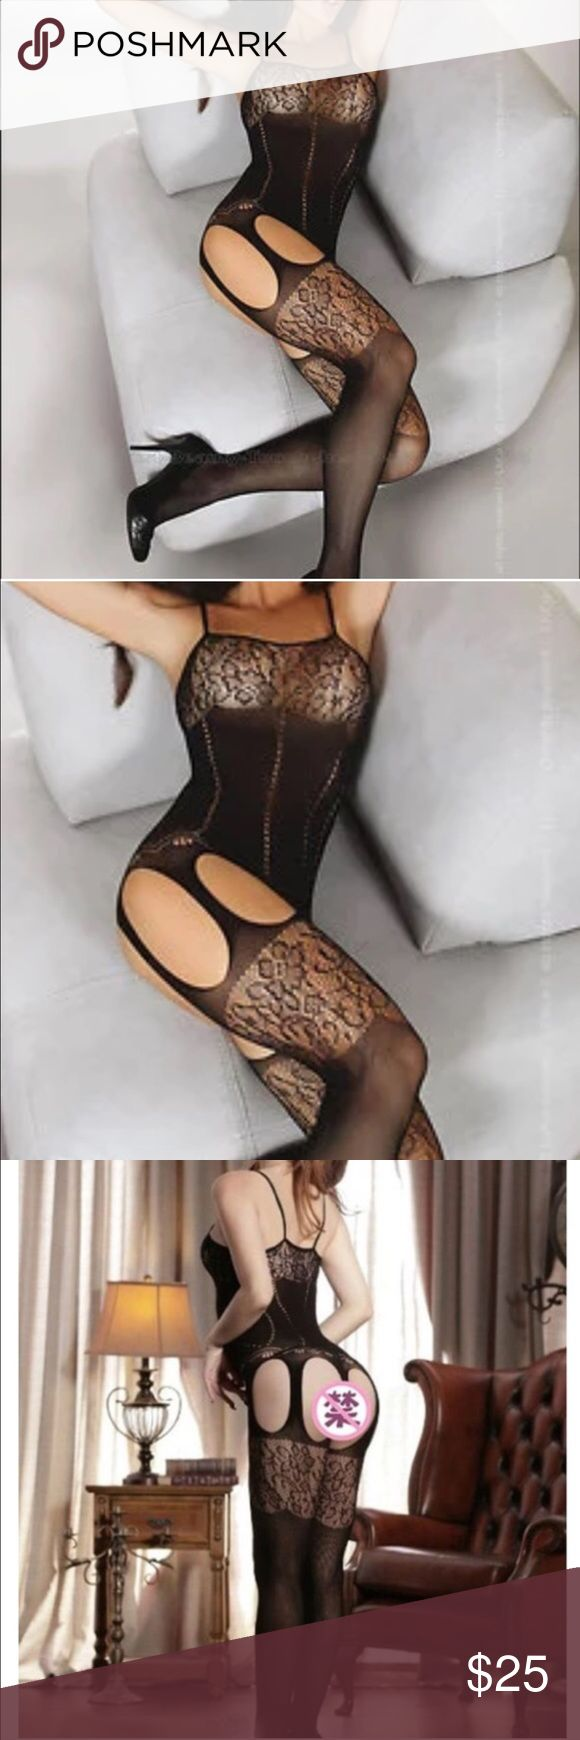 Black sexy body stocking New. Xs/s/m Intimates & Sleepwear Shapewear